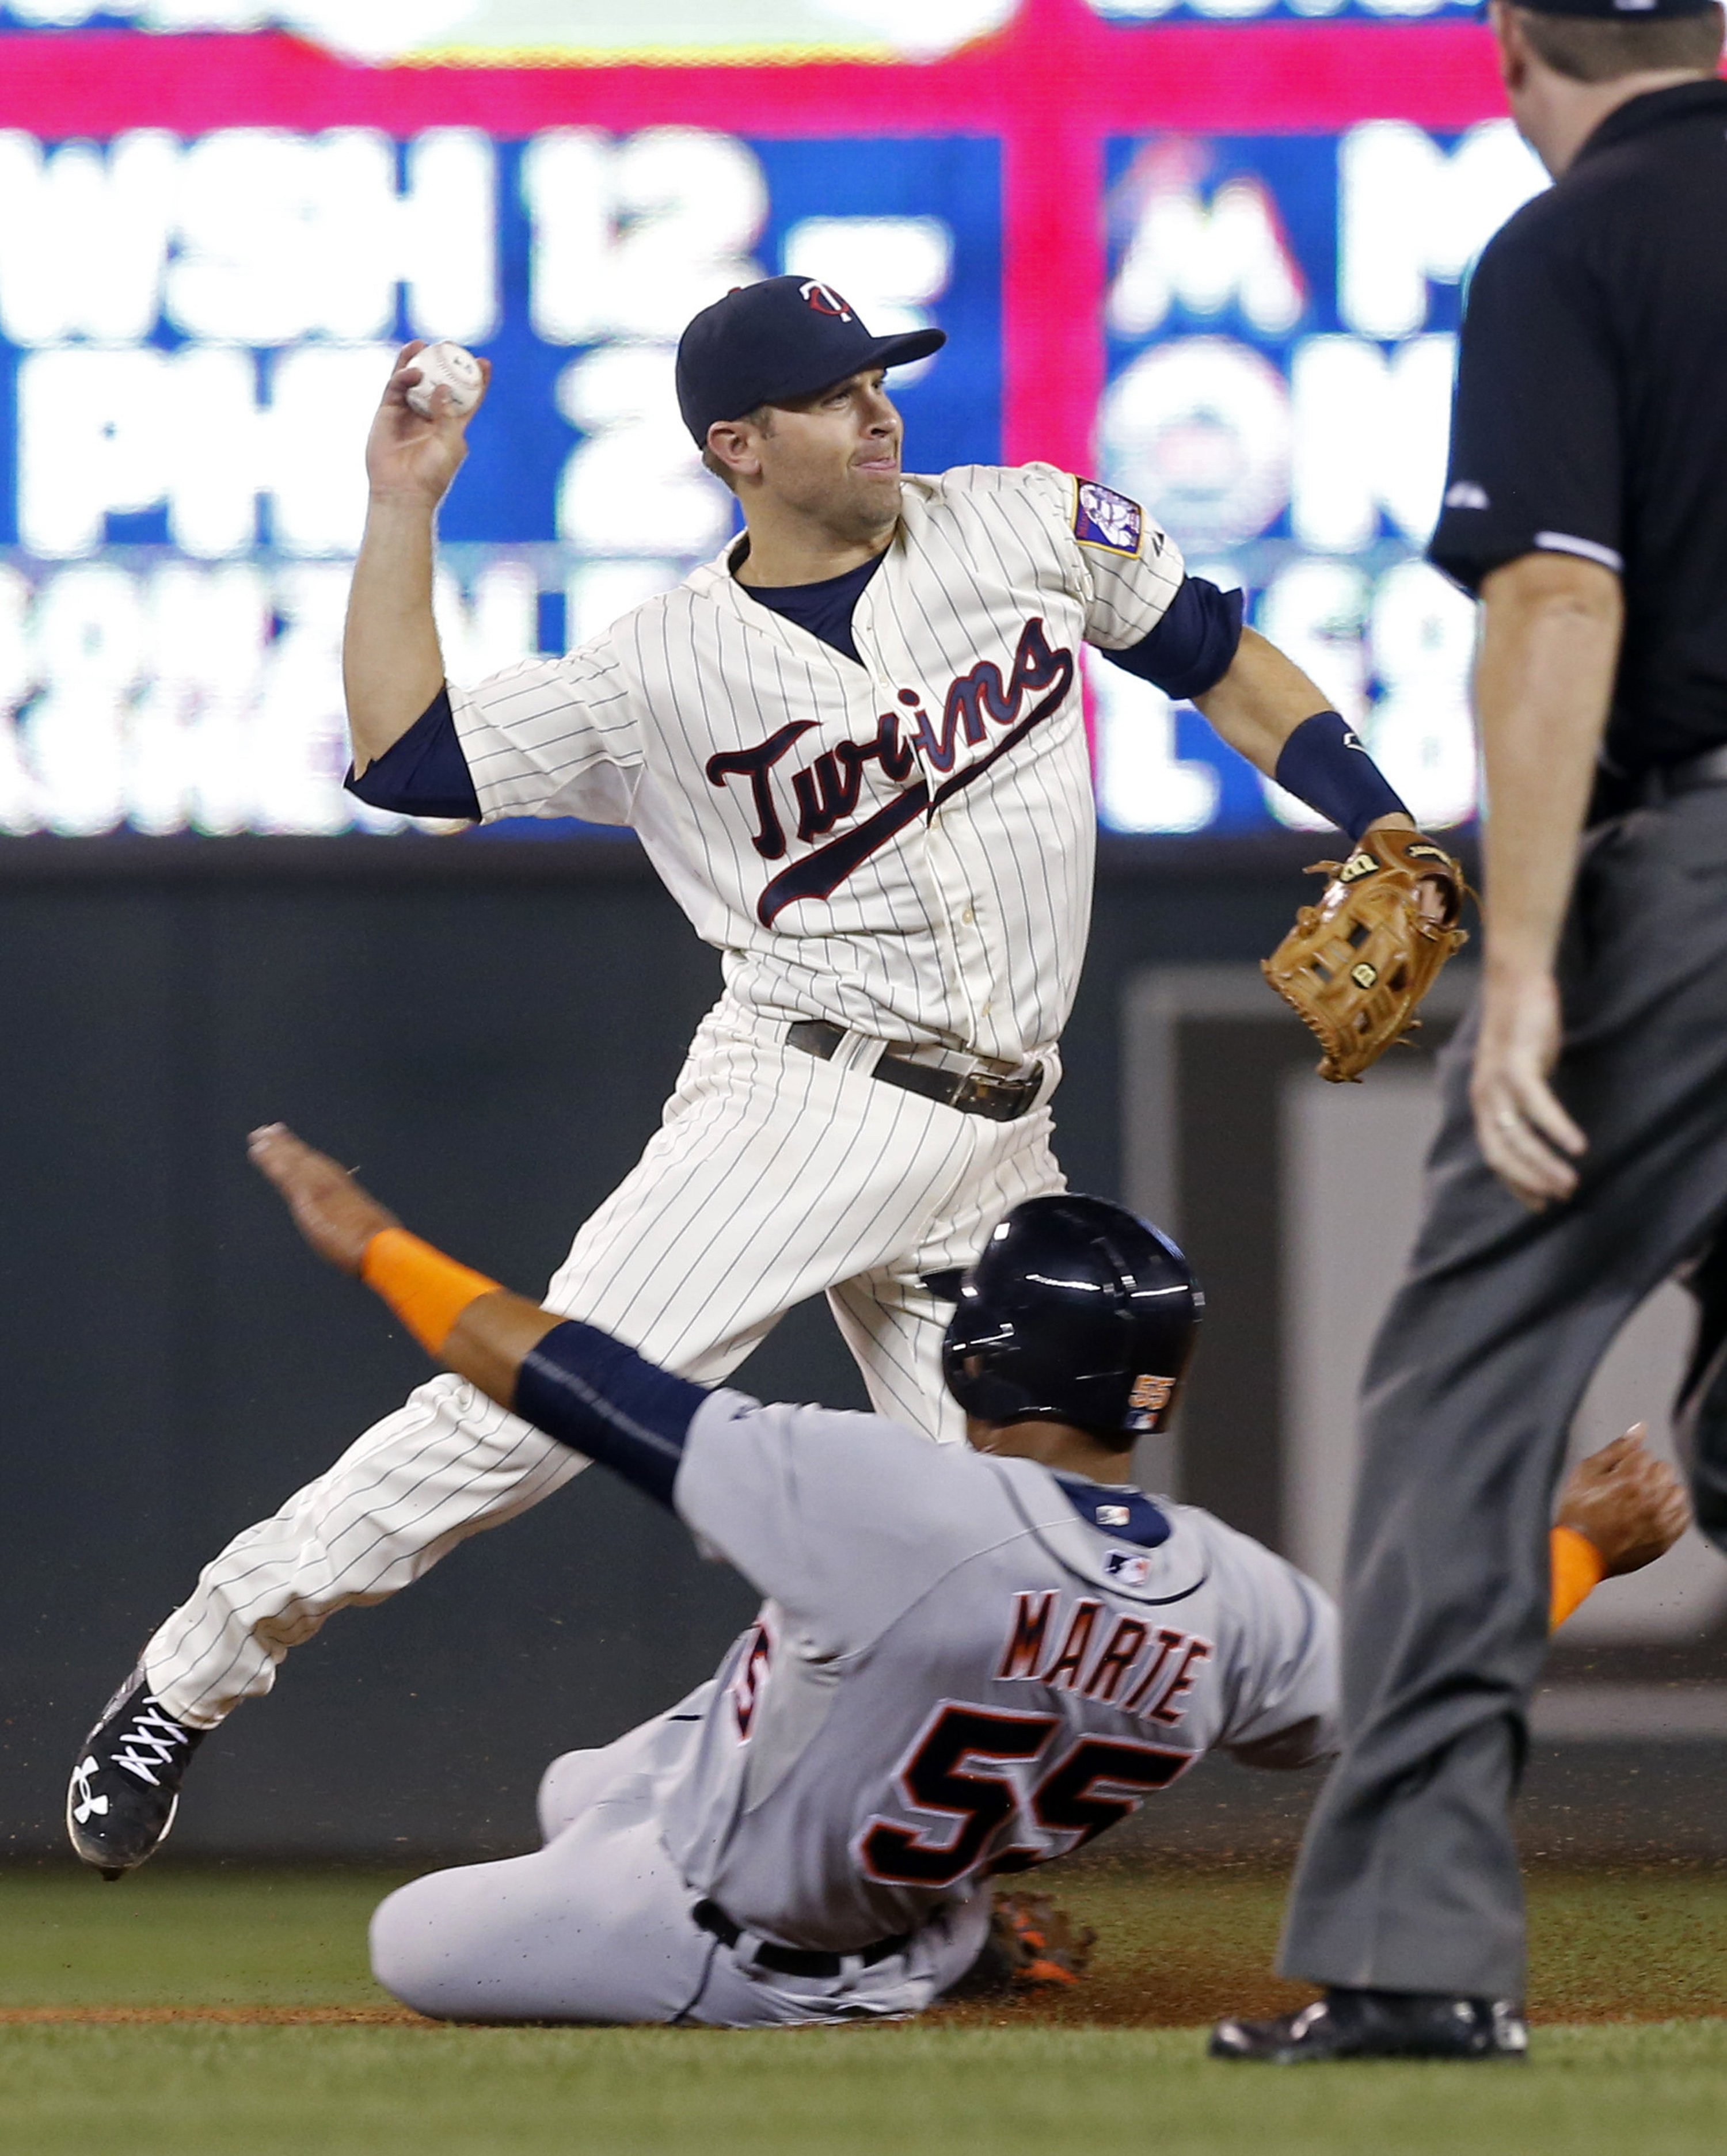 Minnesota Twins second baseman Brian Dozier throws to complete the double play on Detroit Tigers' James McCann after the force at second of Jefry Marte, bottom, in the fourth inning of a baseball game, Wednesday, Sept. 16, 2015, in Minneapolis. (AP Photo/